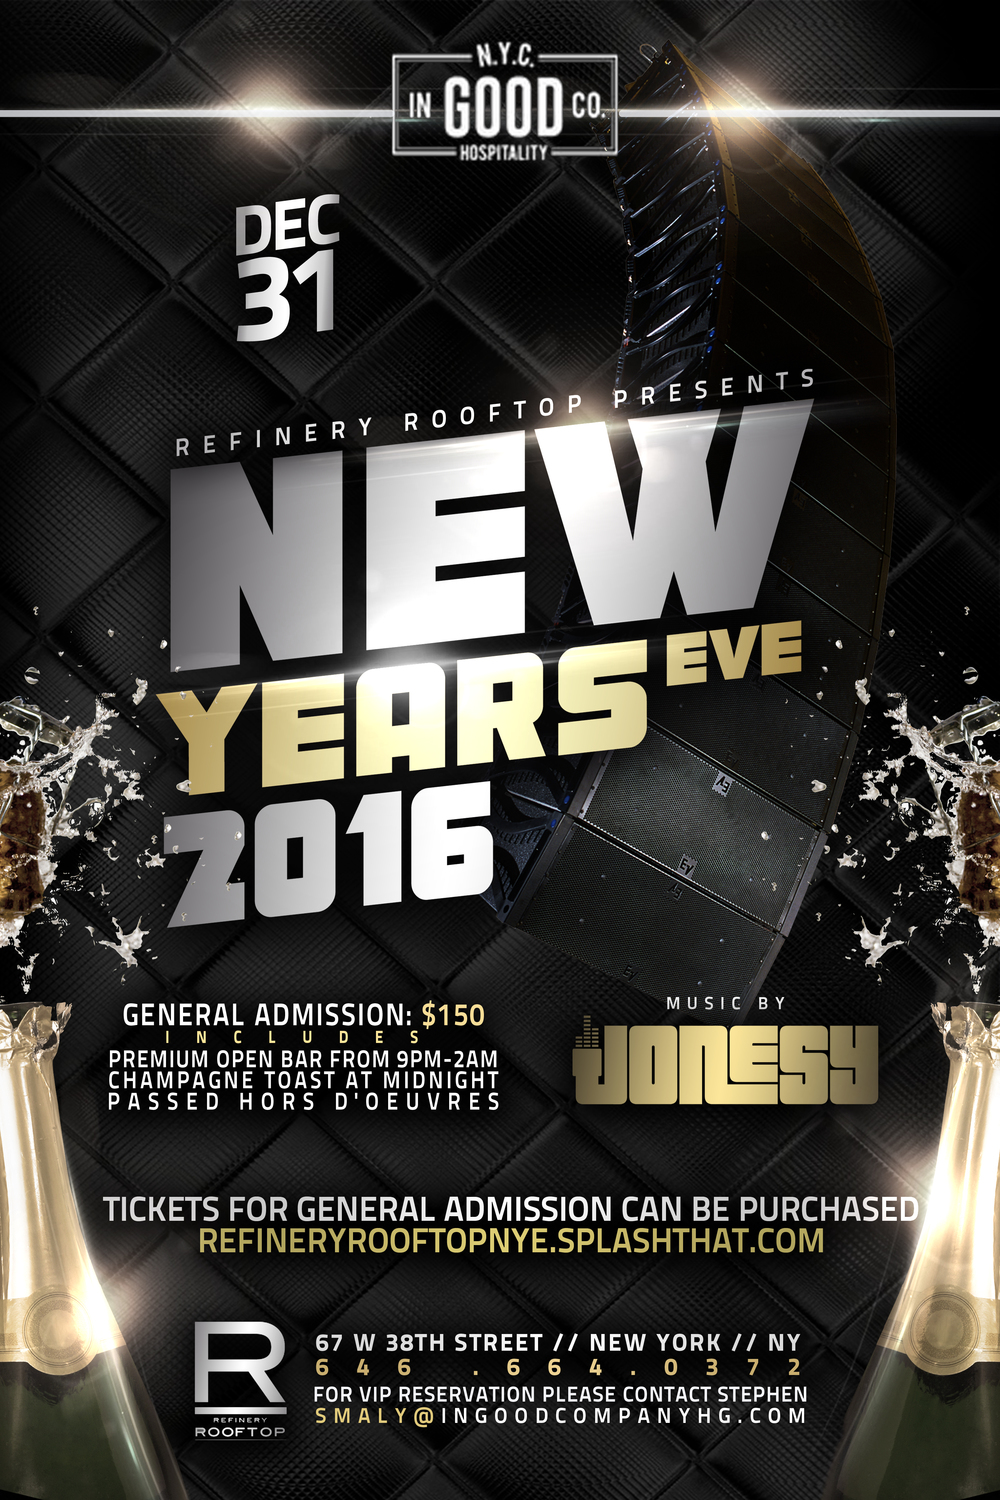 Tickets for General Admission can be purchased @ http://refineryrooftopnye.splashthat.com General Admission is $150 which includes:   Premium Open Bar from 9pm-2am Champagne Toast at Midnight Passed hors d'oeuvres Music and Entertainment for the Evening   VIP Table Service Tickets for VIP Admission must be done via email.  Contact Stephen at smaly@ingoodcompanyhg.com $250 per person (2 person minimum - 8 person maximum per table) Private VIP table for the duration of the evening including bottle and cocktail service for the evening. Bottle service 2-3 people = 1 bottle Greygoose, 1 bottle Vueve Clicquot Champagne Bottle service 4-5 people = 1 bottles Greygoose, 2 bottle Vueve Clicquot Champagne Bottle service 6-8 people = 2 bottles Greygoose, 2 bottles Vueve Cliquot Champagne